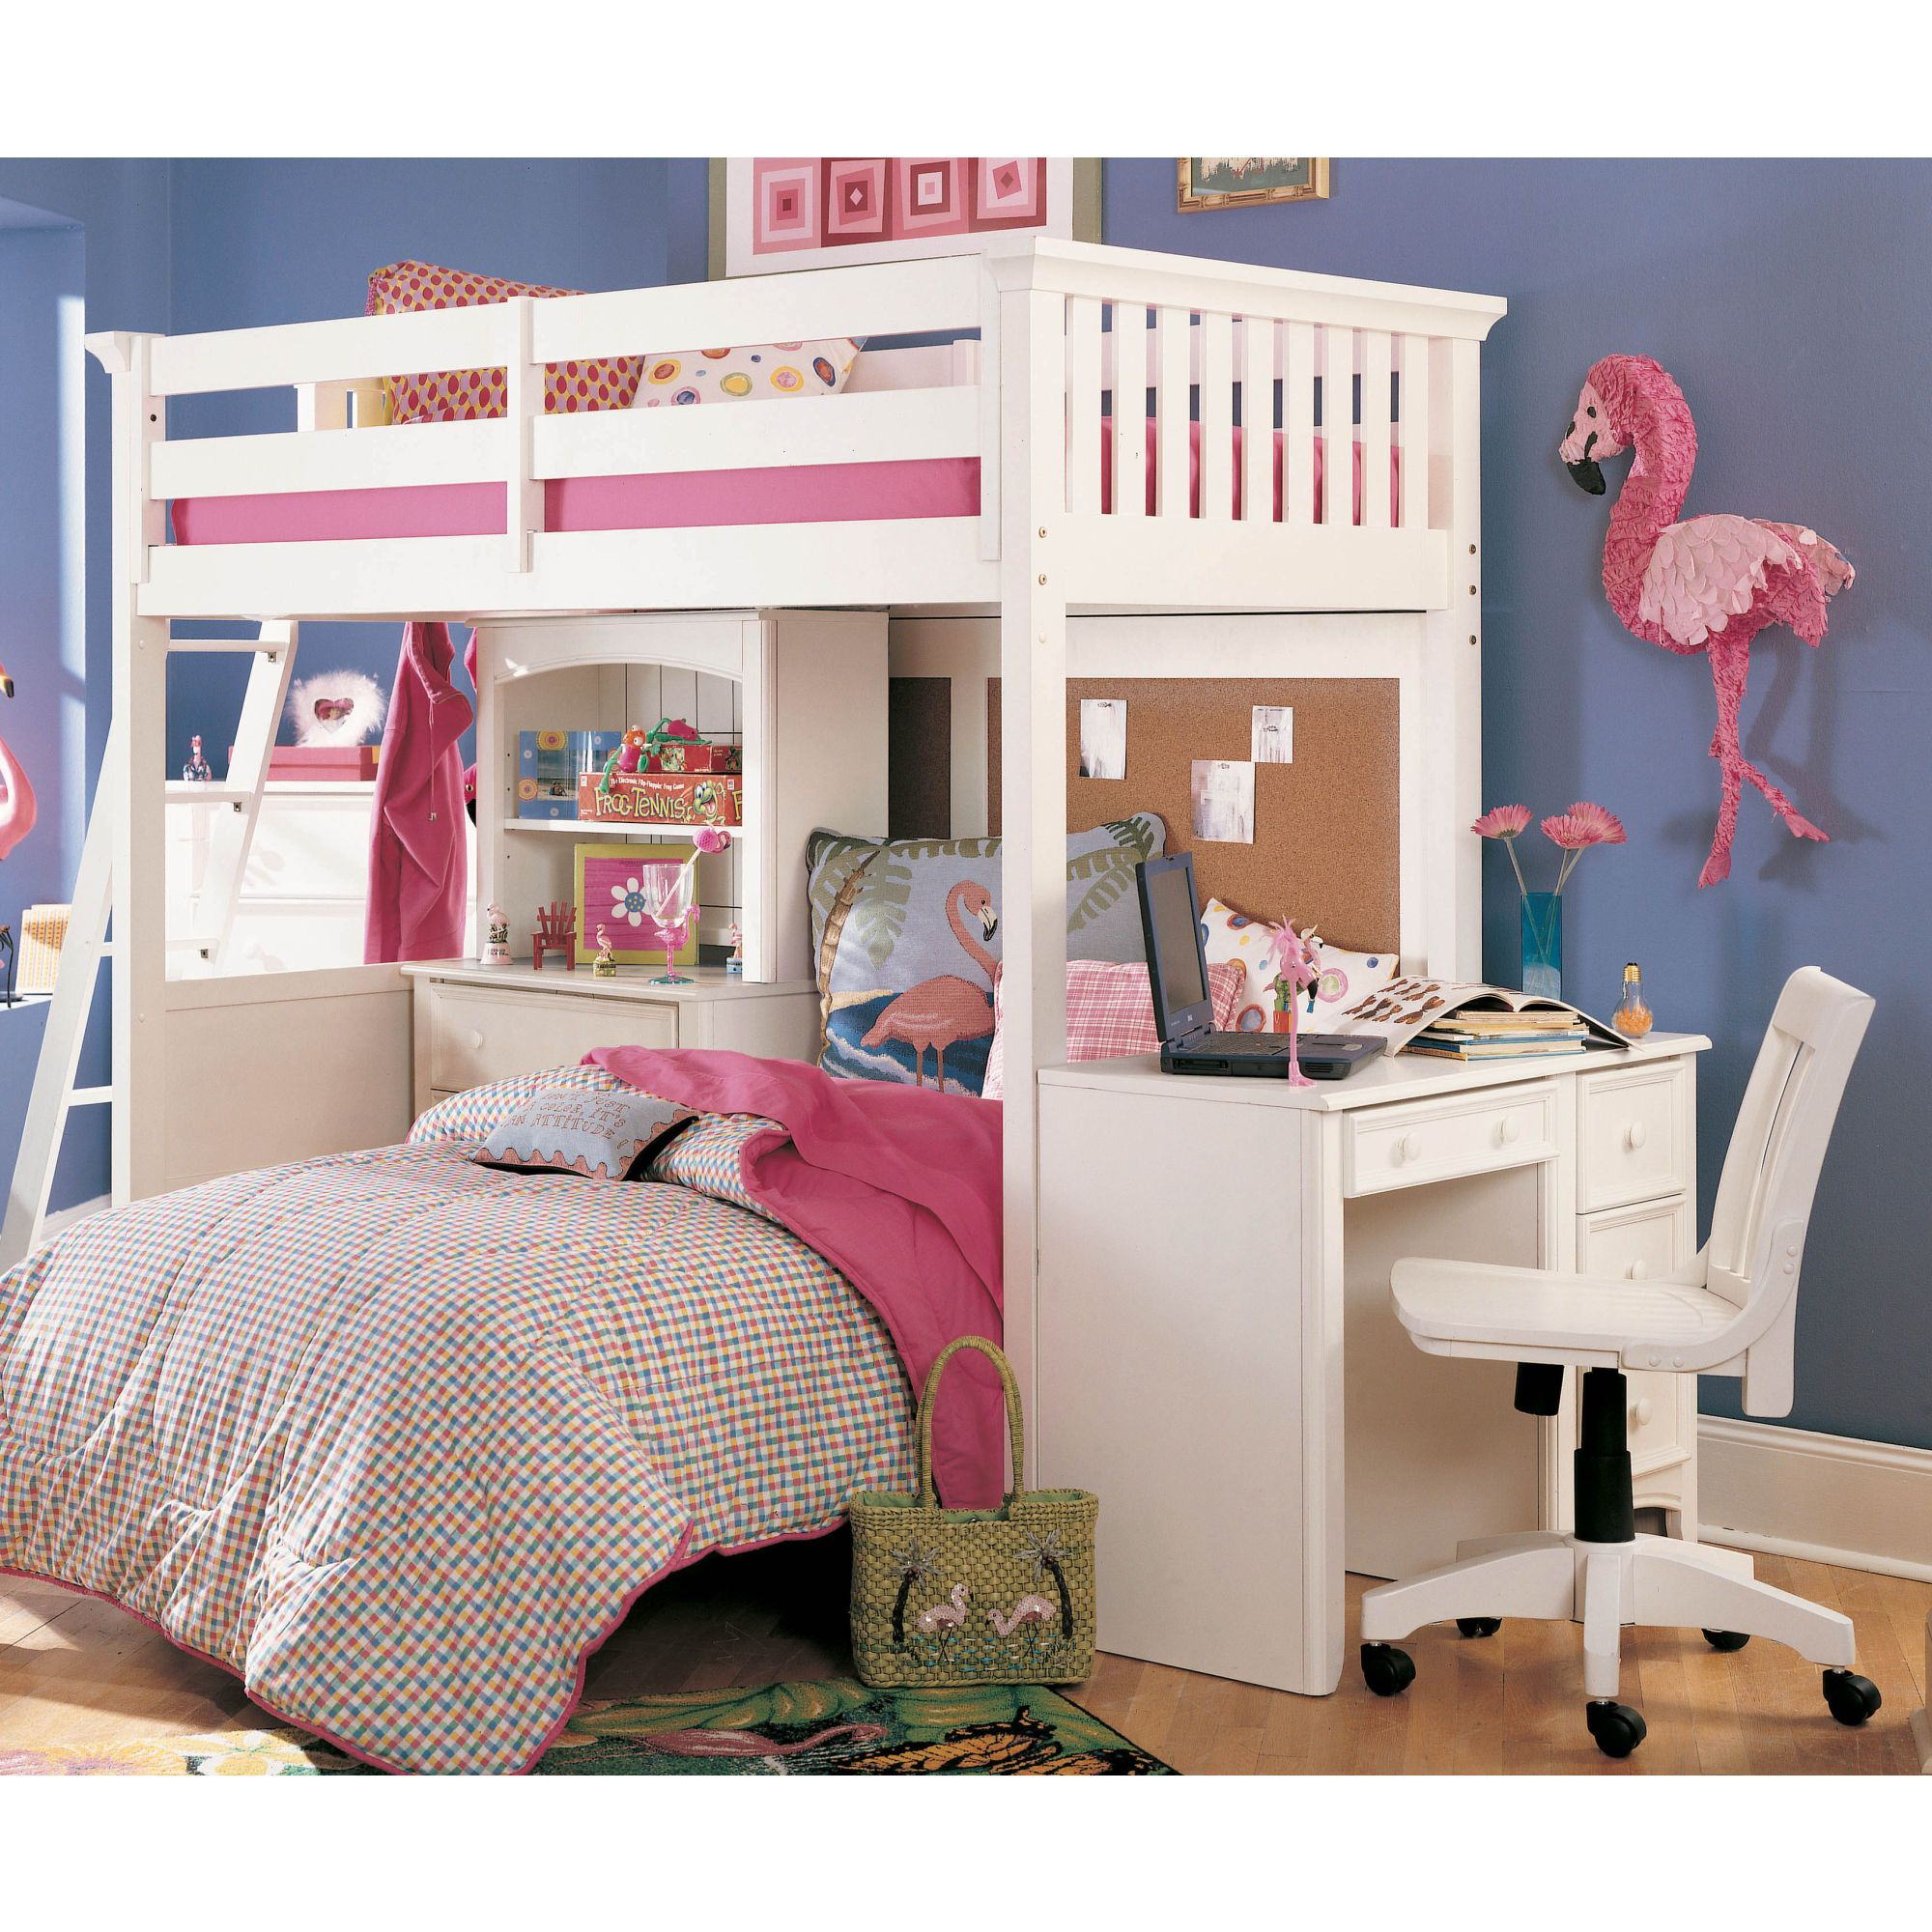 Possible Idea For The Girls Bunk Bed Put A Queen On Bottom For 2 Girls Girls Bunk Beds Kids Loft Bunk Bed Loft Bunk Beds